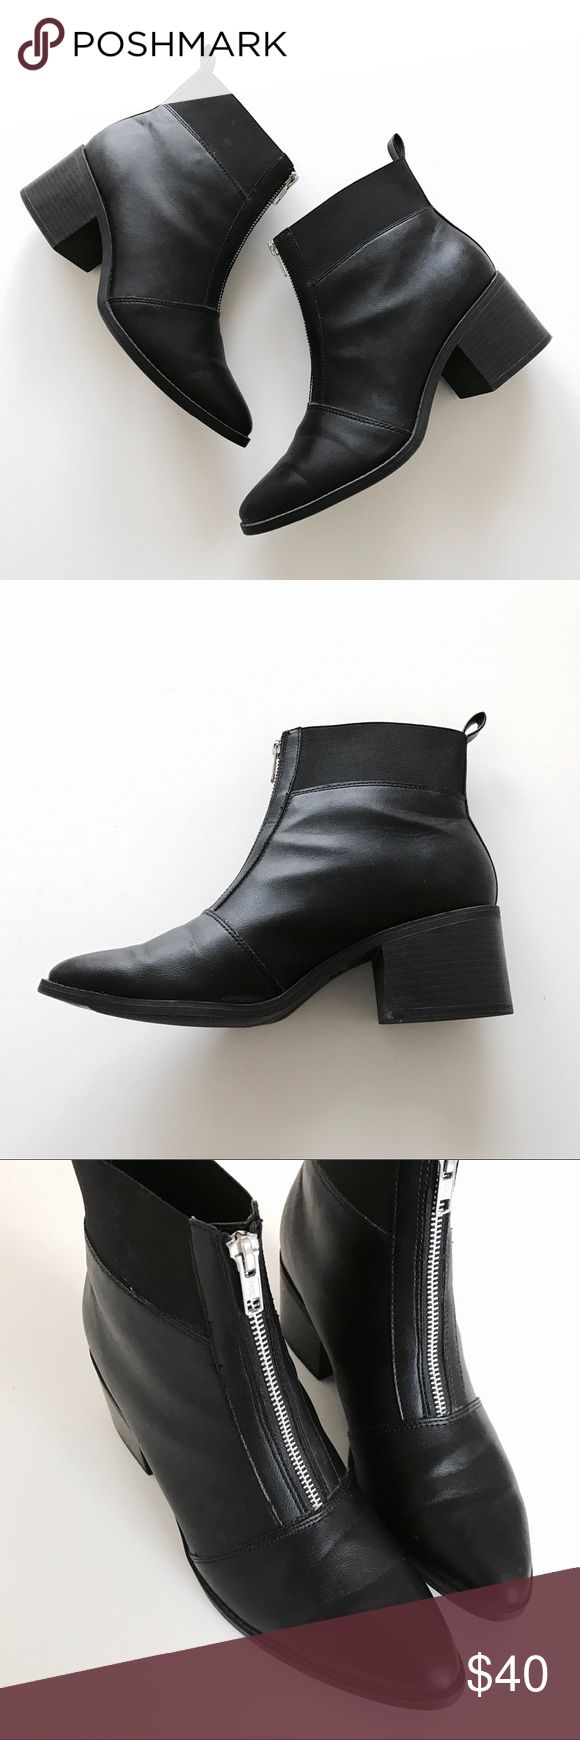 New Look Black Heeled Zip Front Booties New Look zip front ankle boots in size UK 8/EU 42. Fits like a women's US 10. Worn only a handful of times. ASOS Shoes Ankle Boots & Booties